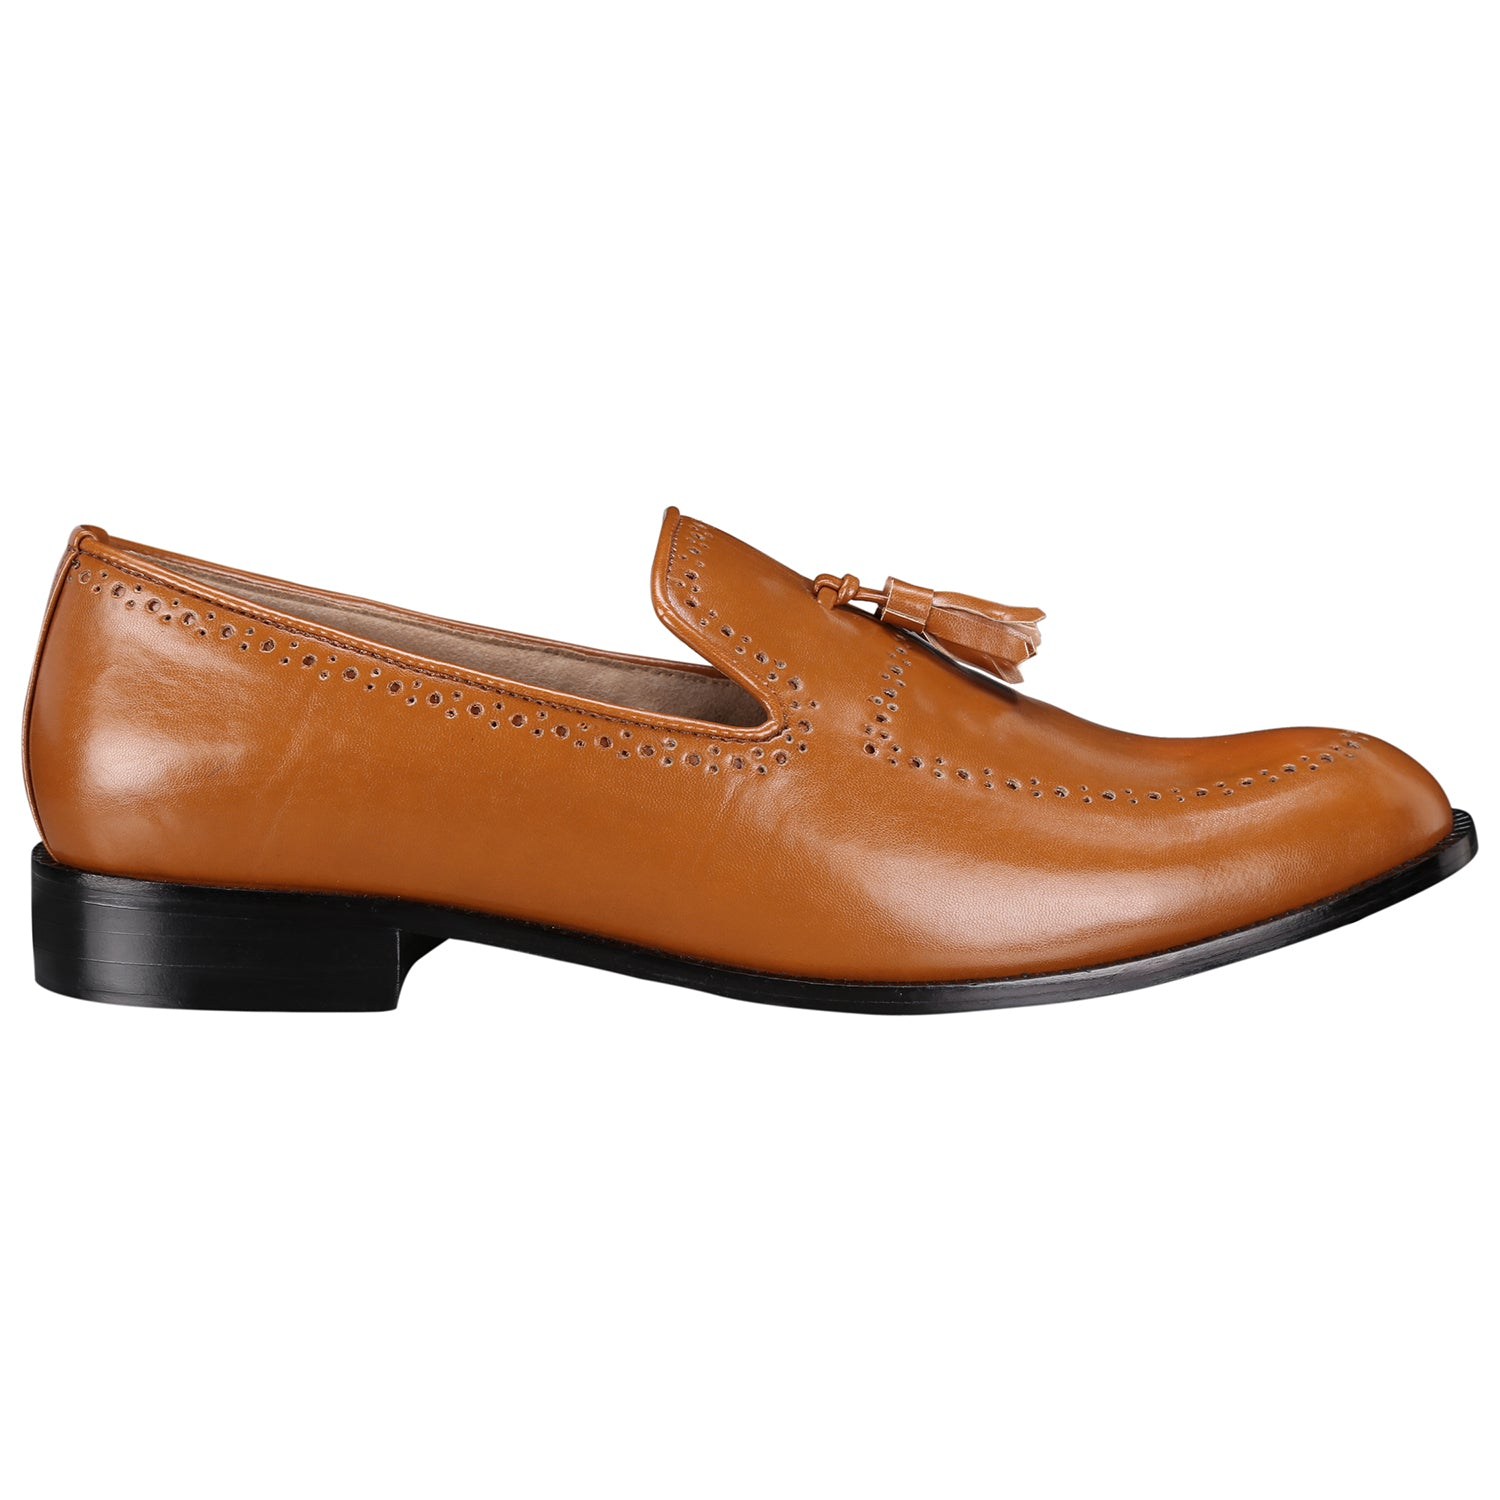 BAYONNE BROGUES TAN TASSEL LOAFERS